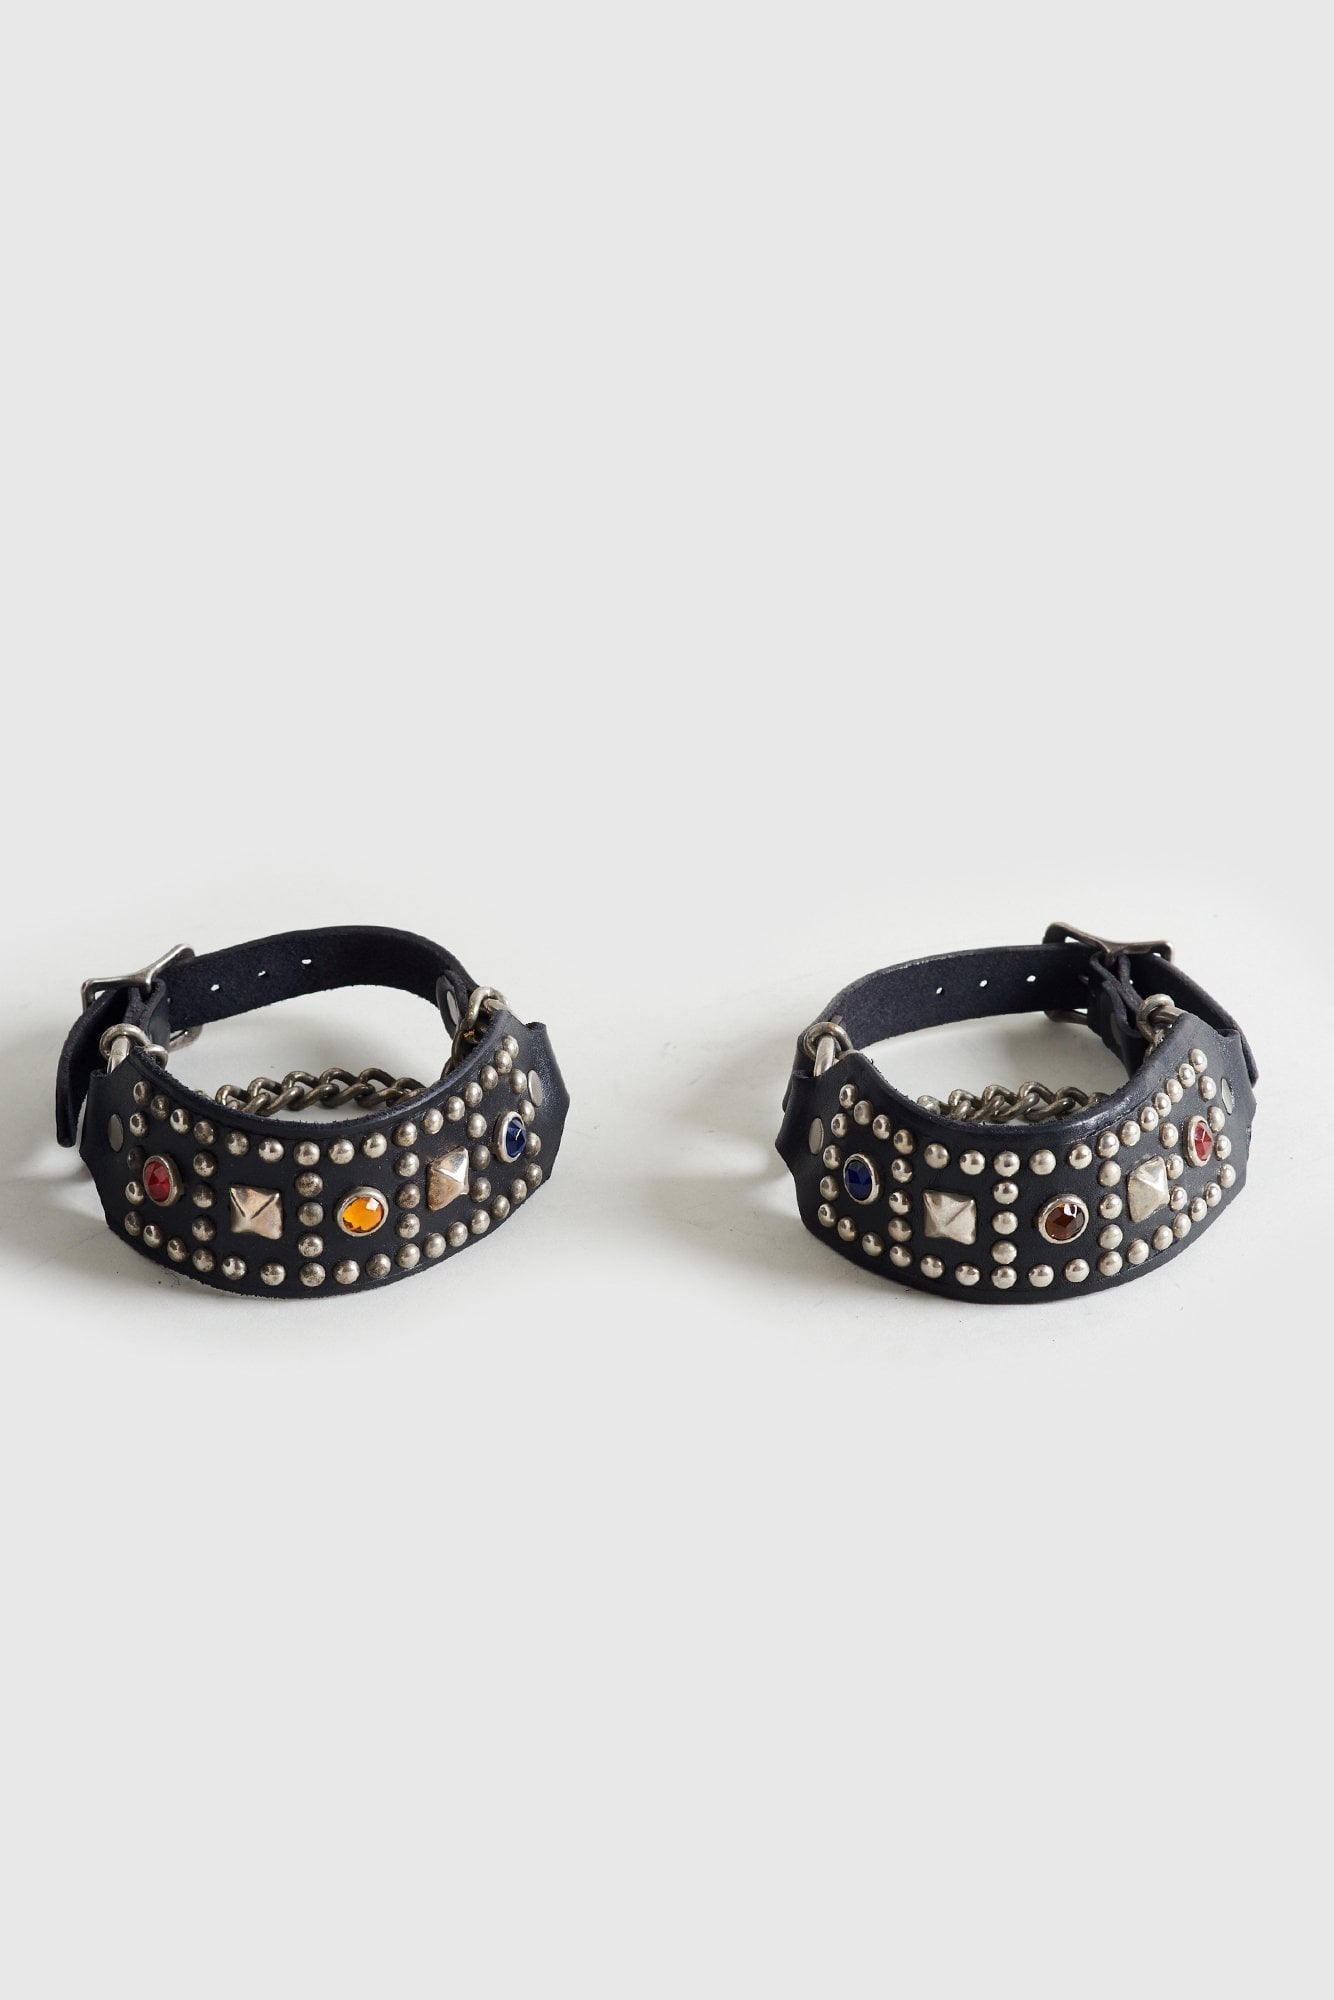 Studded Boot Harness Straps with Multicolor Crystals